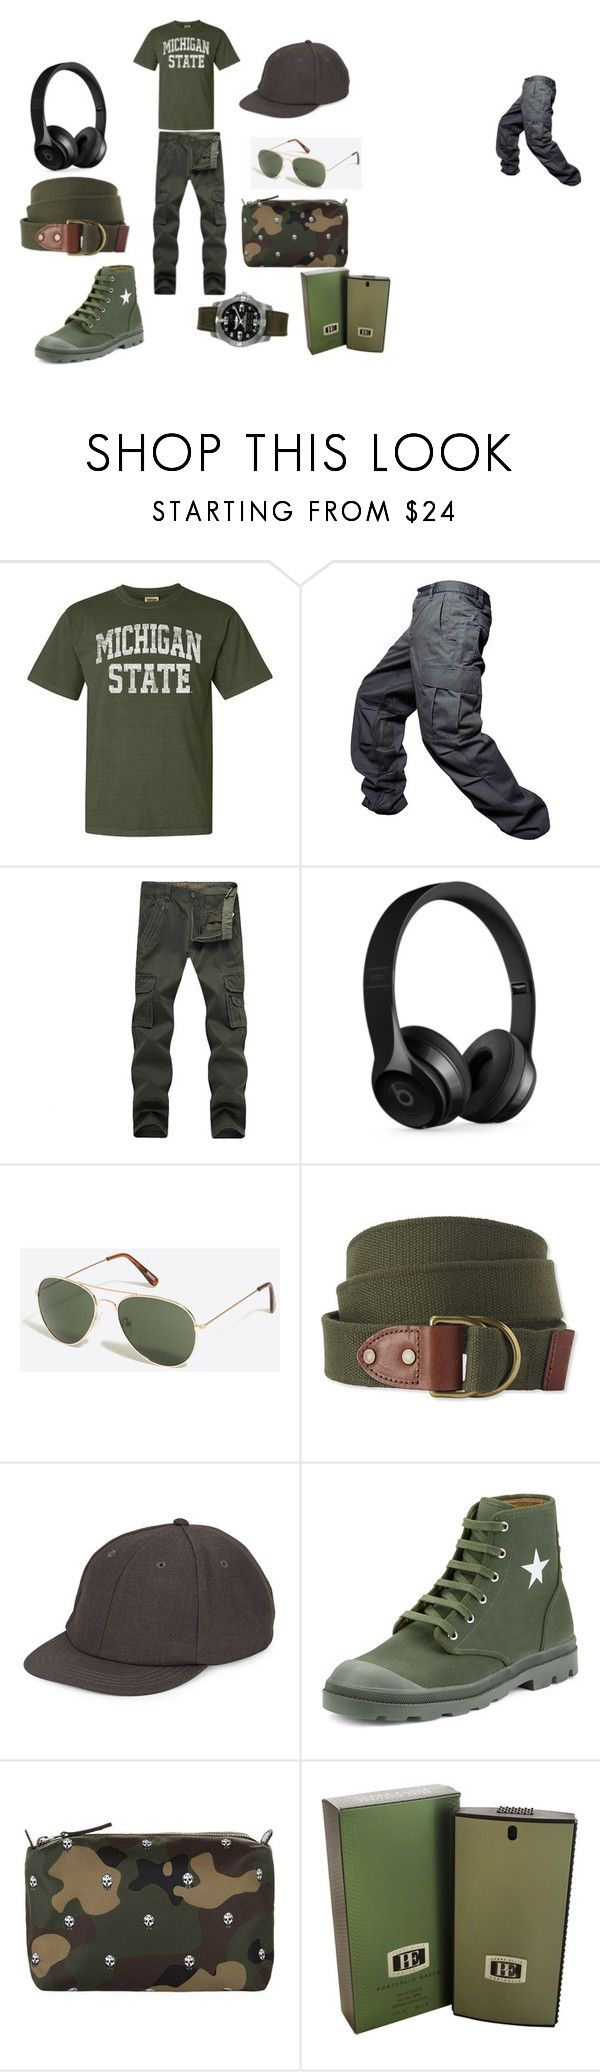 """""""Bez naslova #155"""" by diamond793 ❤ liked on Polyvore featuring Beats by Dr. Dre, J.Crew, L.L.Bean, Diesel, Givenchy, Alexander McQueen, Perry Ellis, Breitling, men's fashion and menswear"""